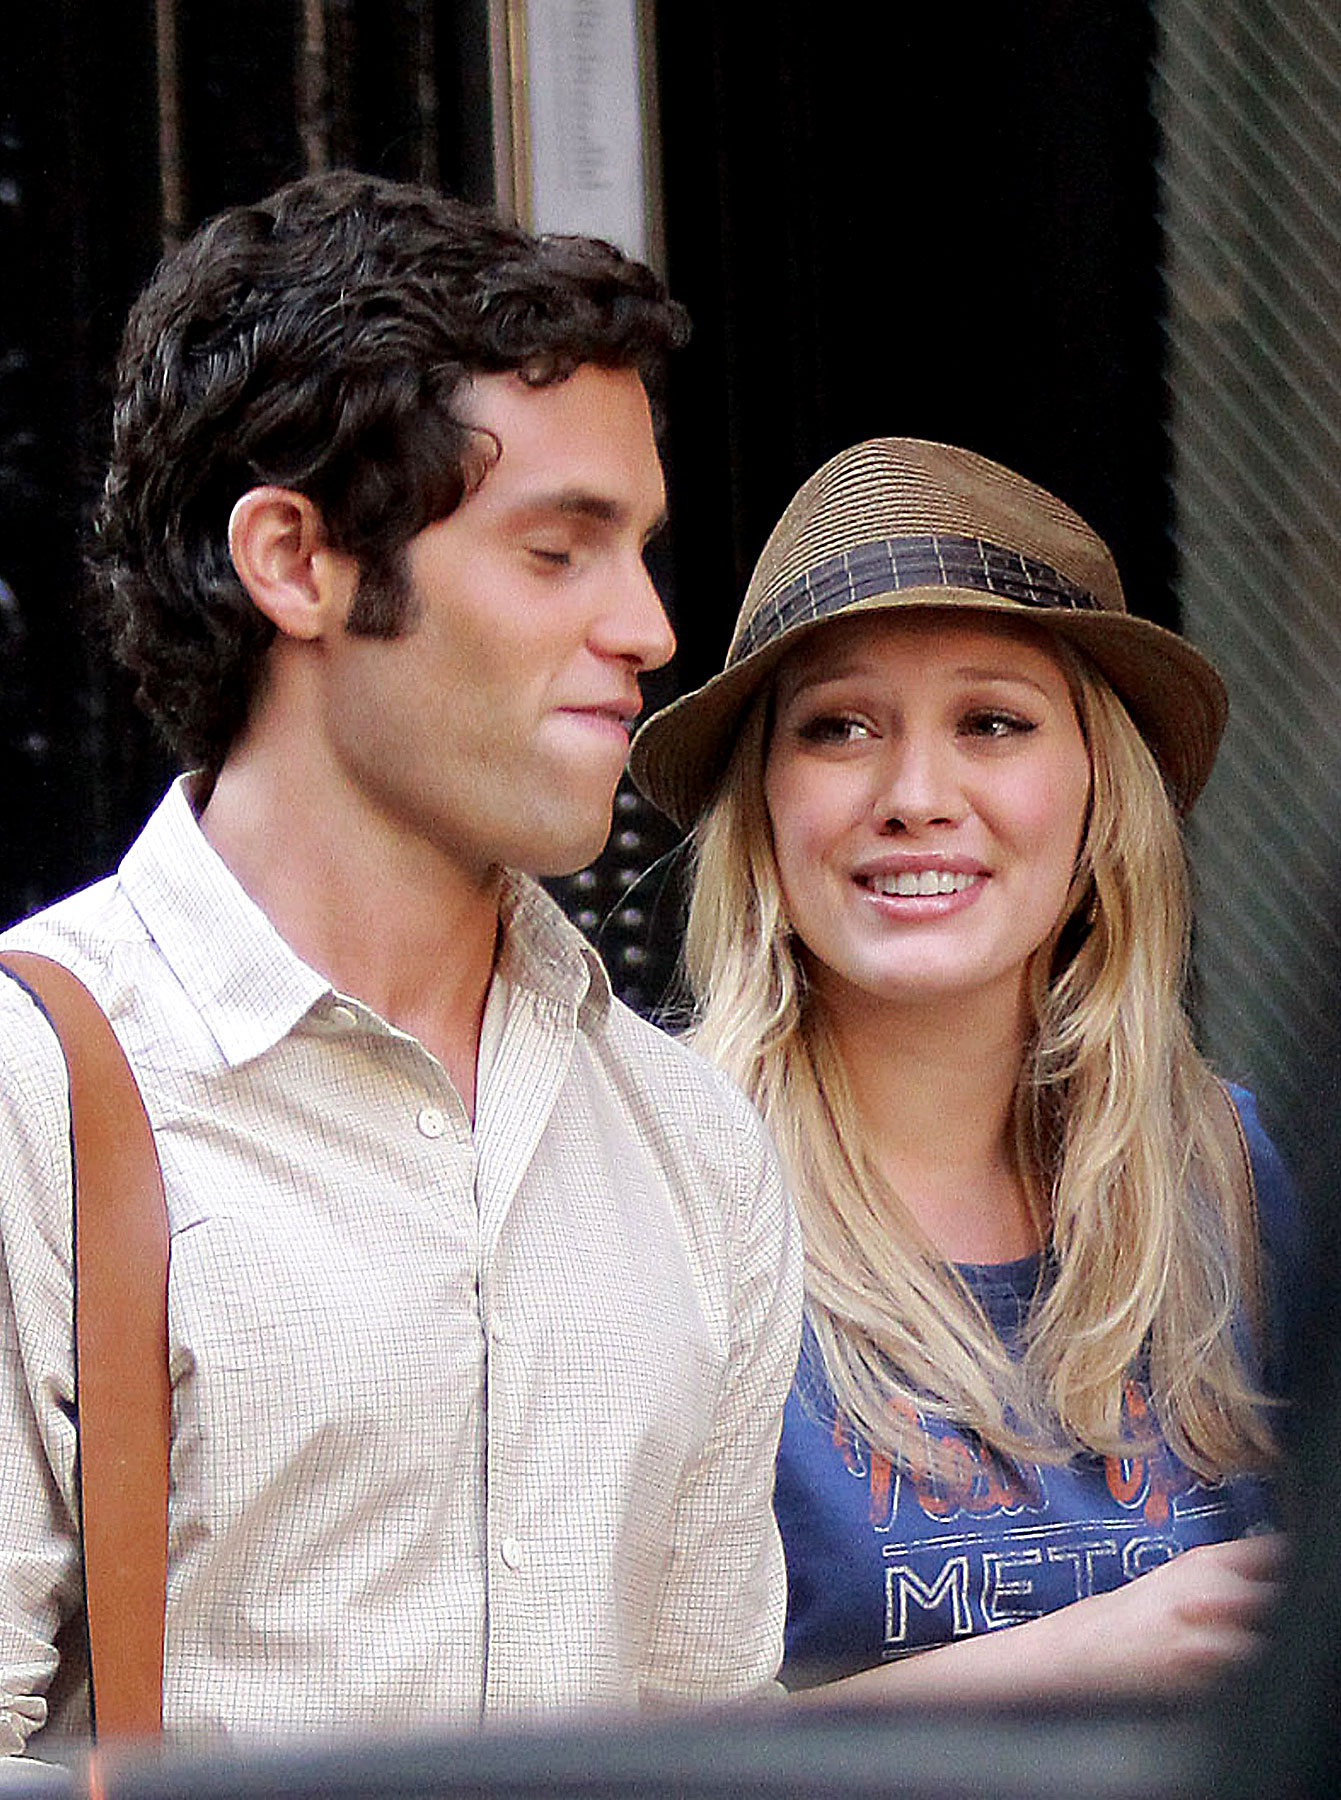 PHOTO GALLERY: Hilary Duff Joins Gossip Girl